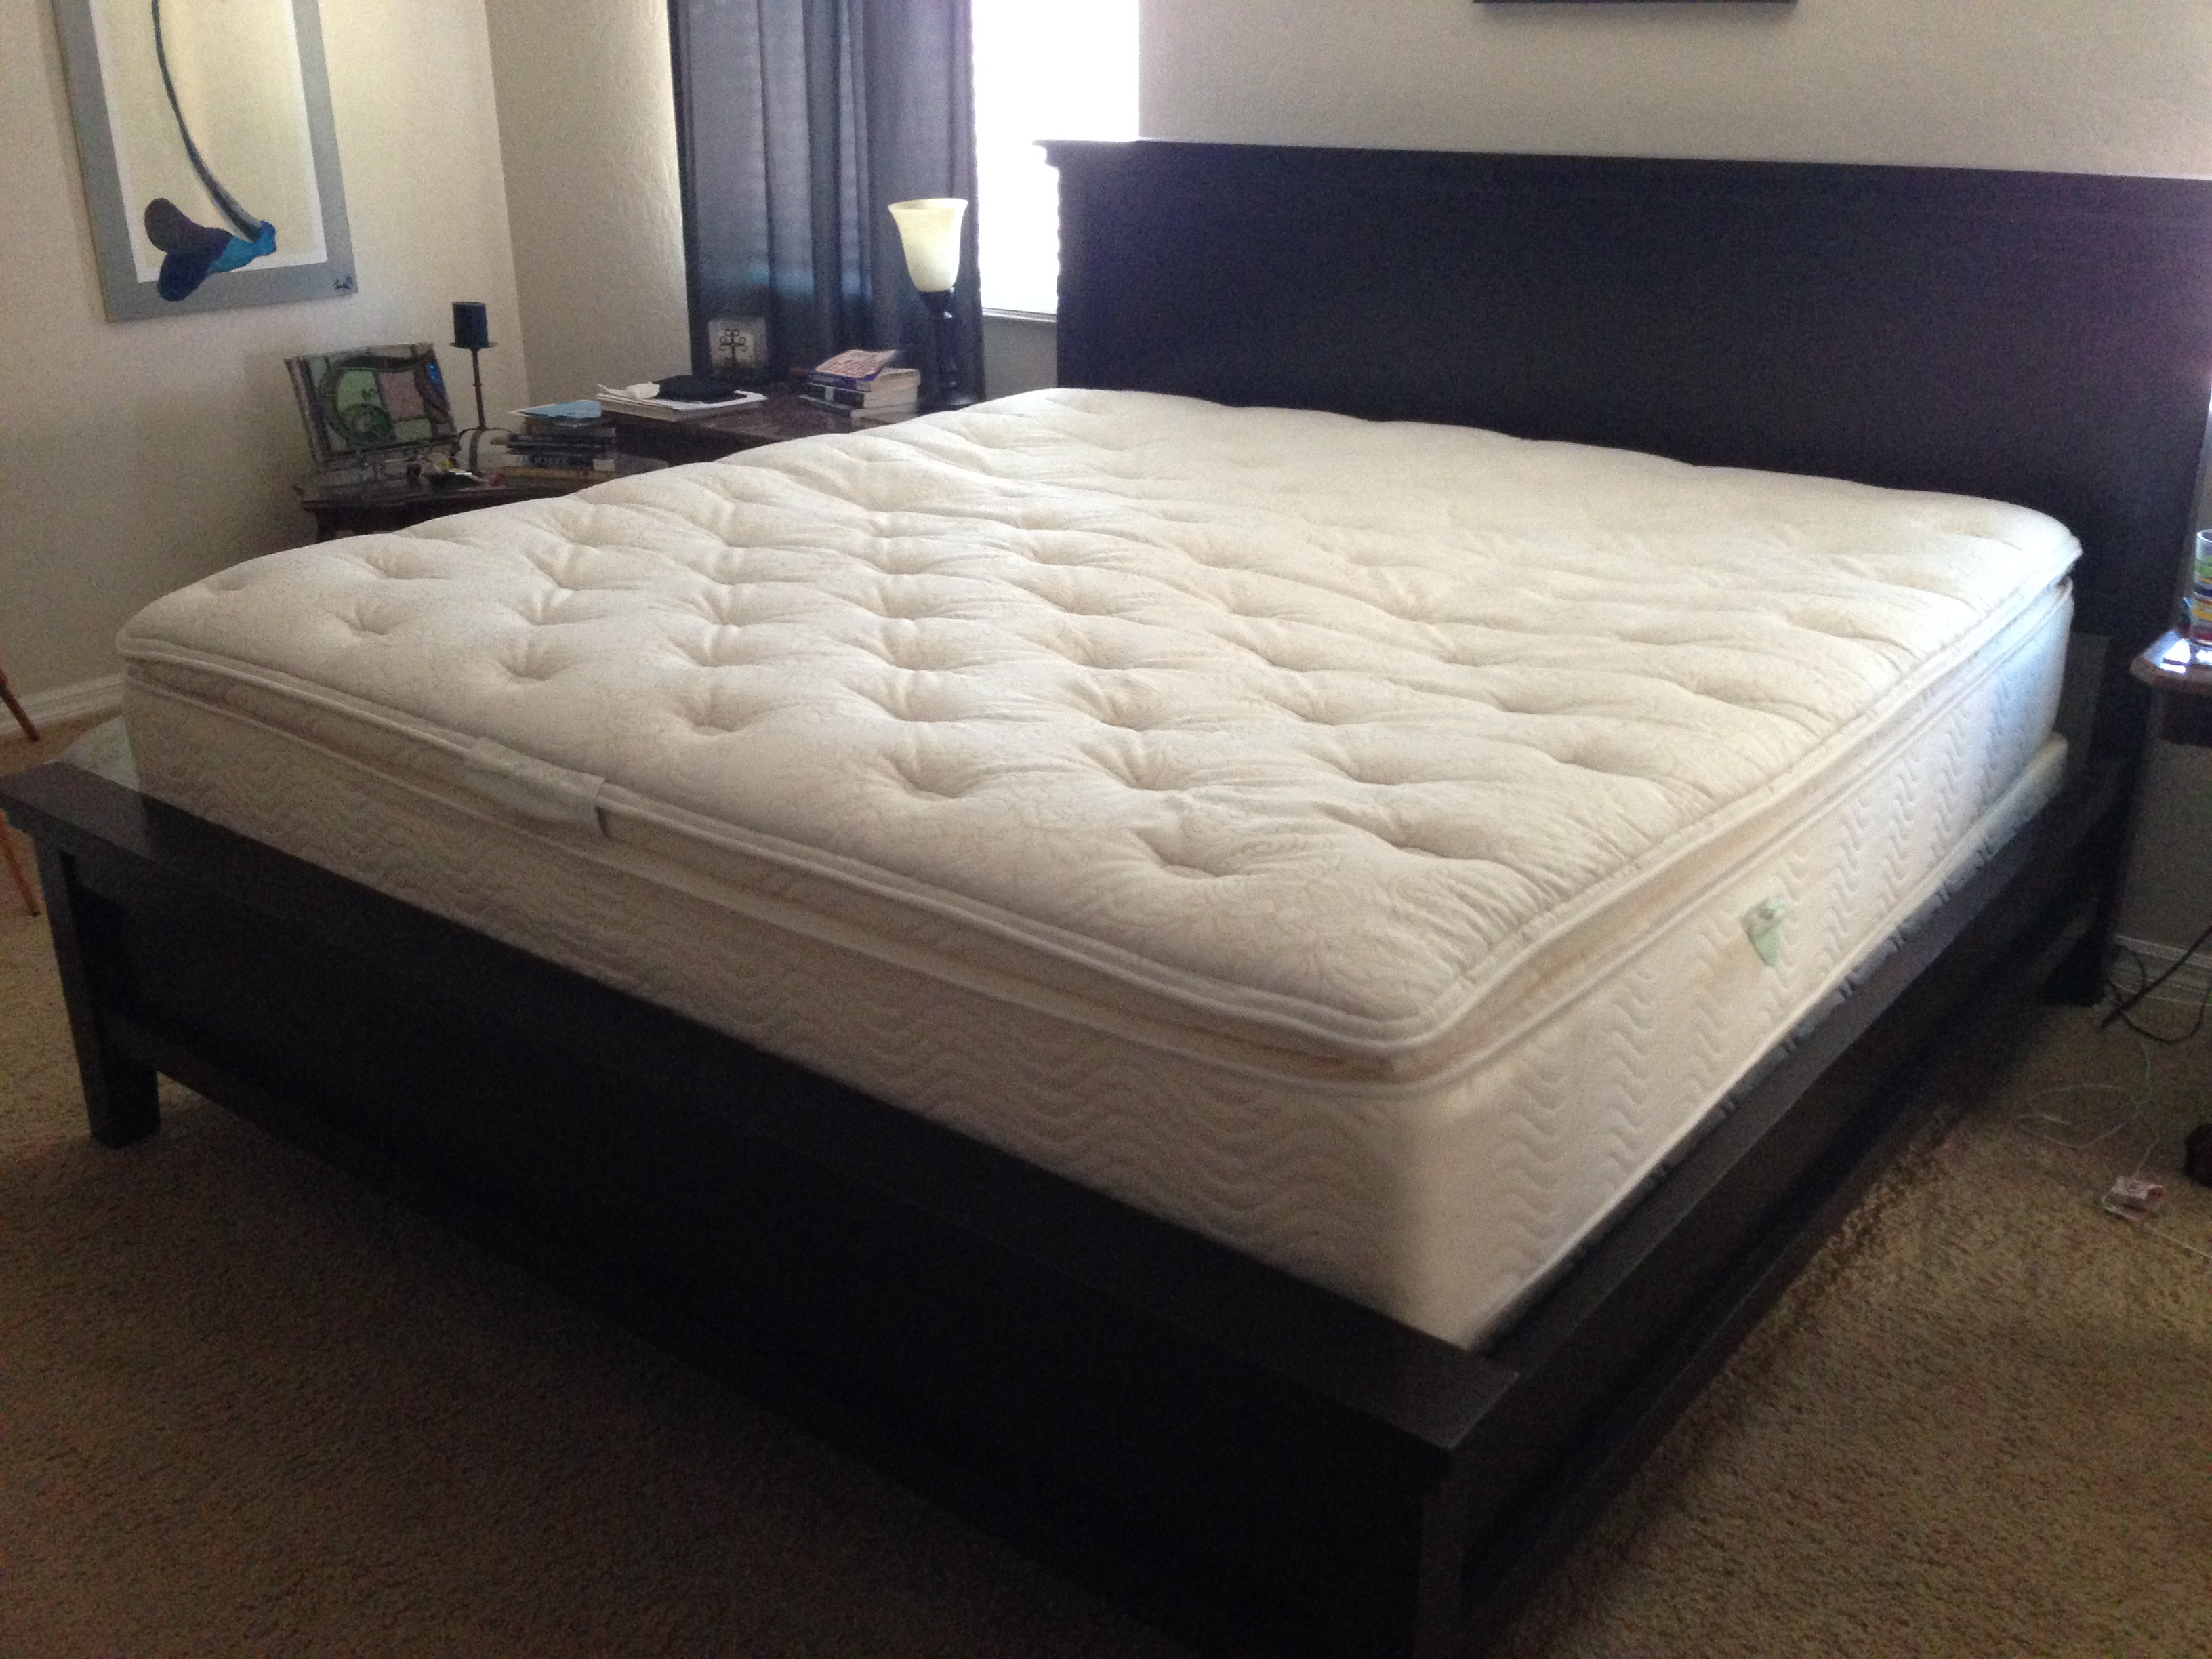 Costco 14 Primifina Novaform Gel Memory Foam Mattress Review Terry Caliendo